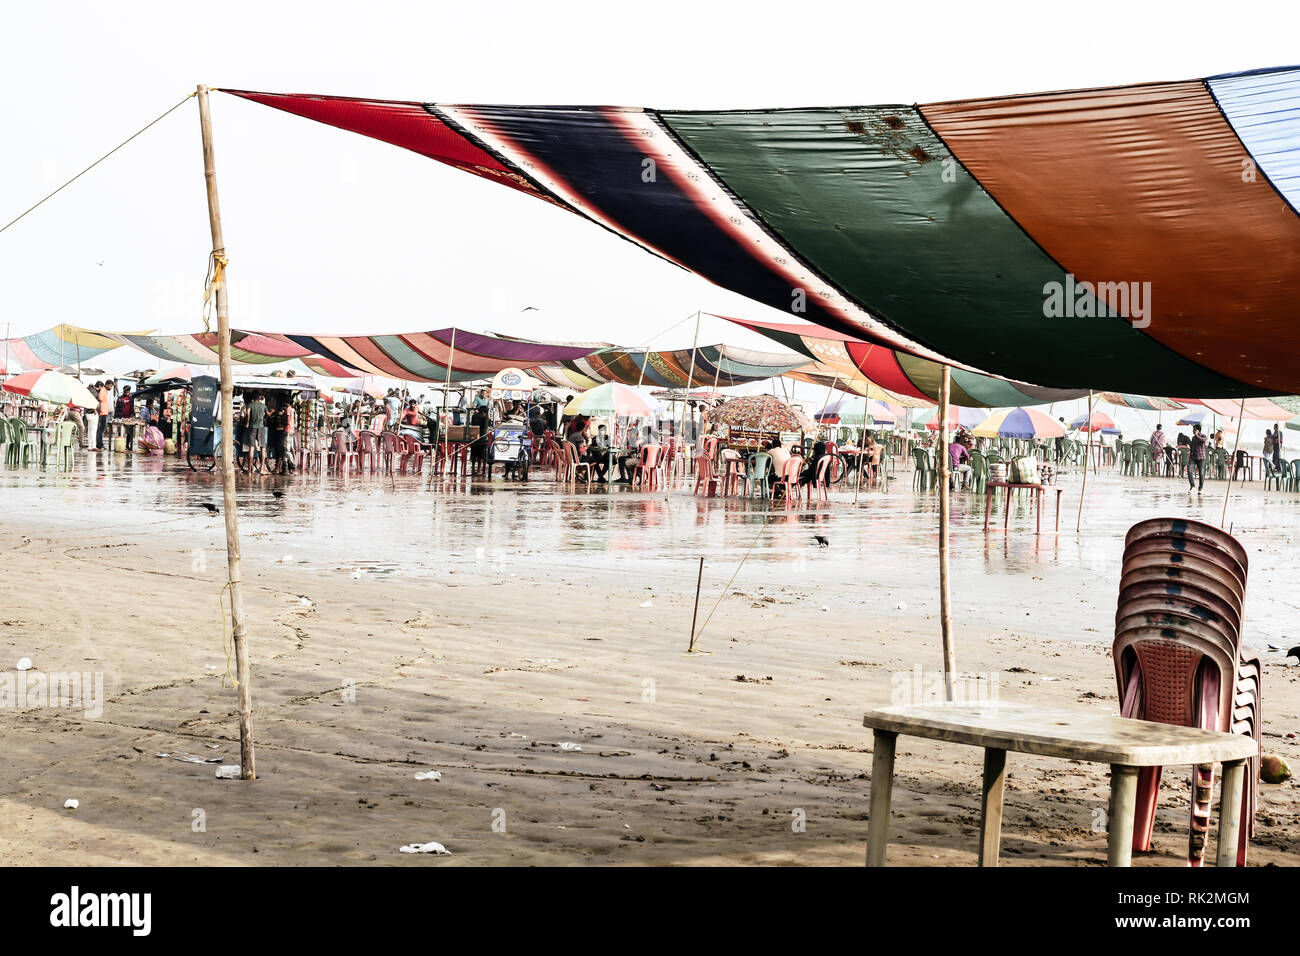 Versova beach, Mumbai India 10, Jan 2019: Beach market View of crowded with tourists and vendors in during new year festival, causes water pollution d - Stock Image